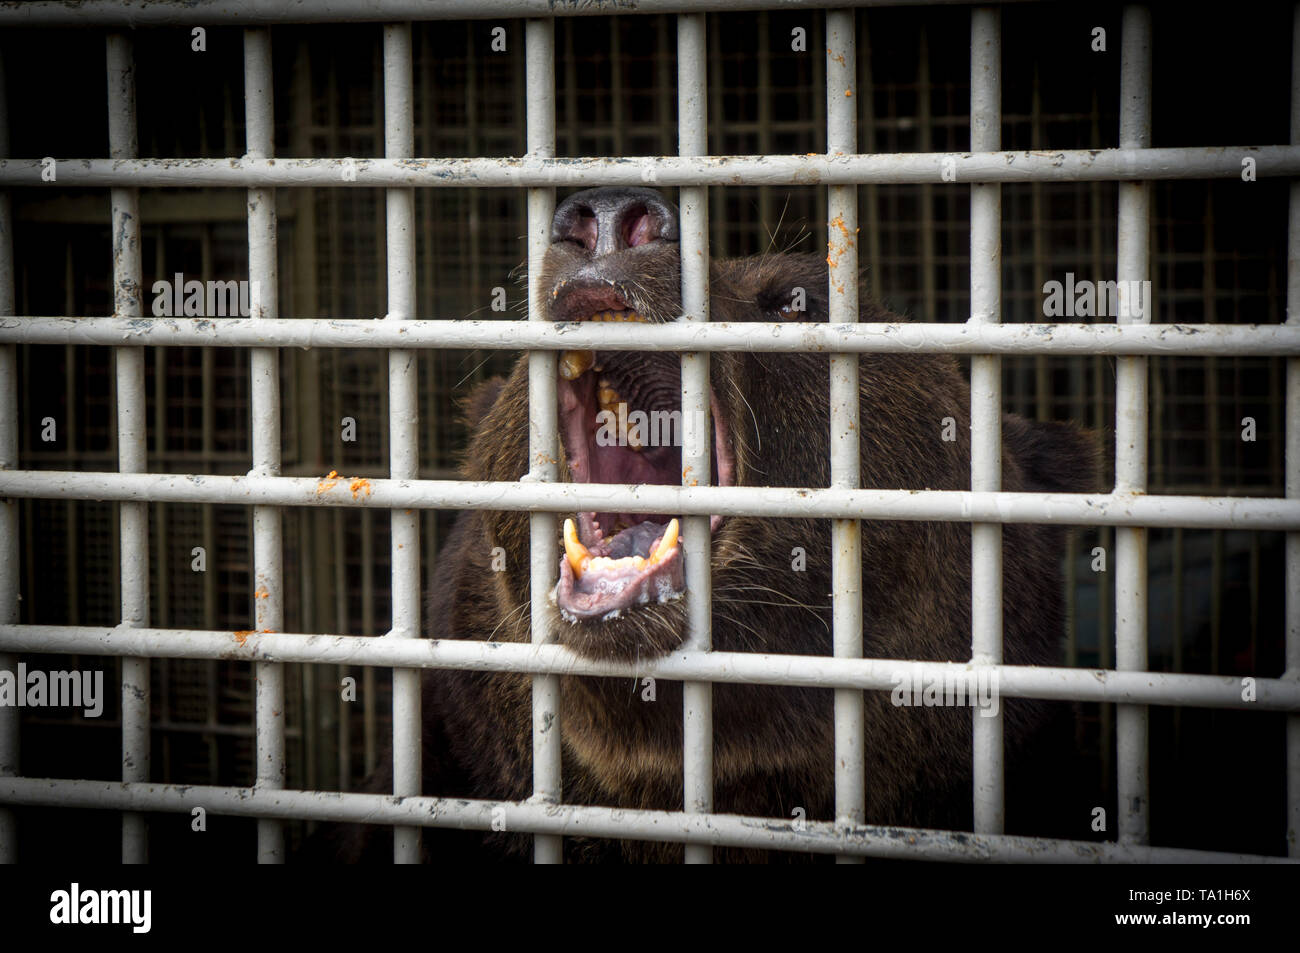 Tambov, Tambov region, Russia. 21st May, 2019. Bear in the zoo of Tambov state University Credit: Demian Stringer/ZUMA Wire/Alamy Live News - Stock Image